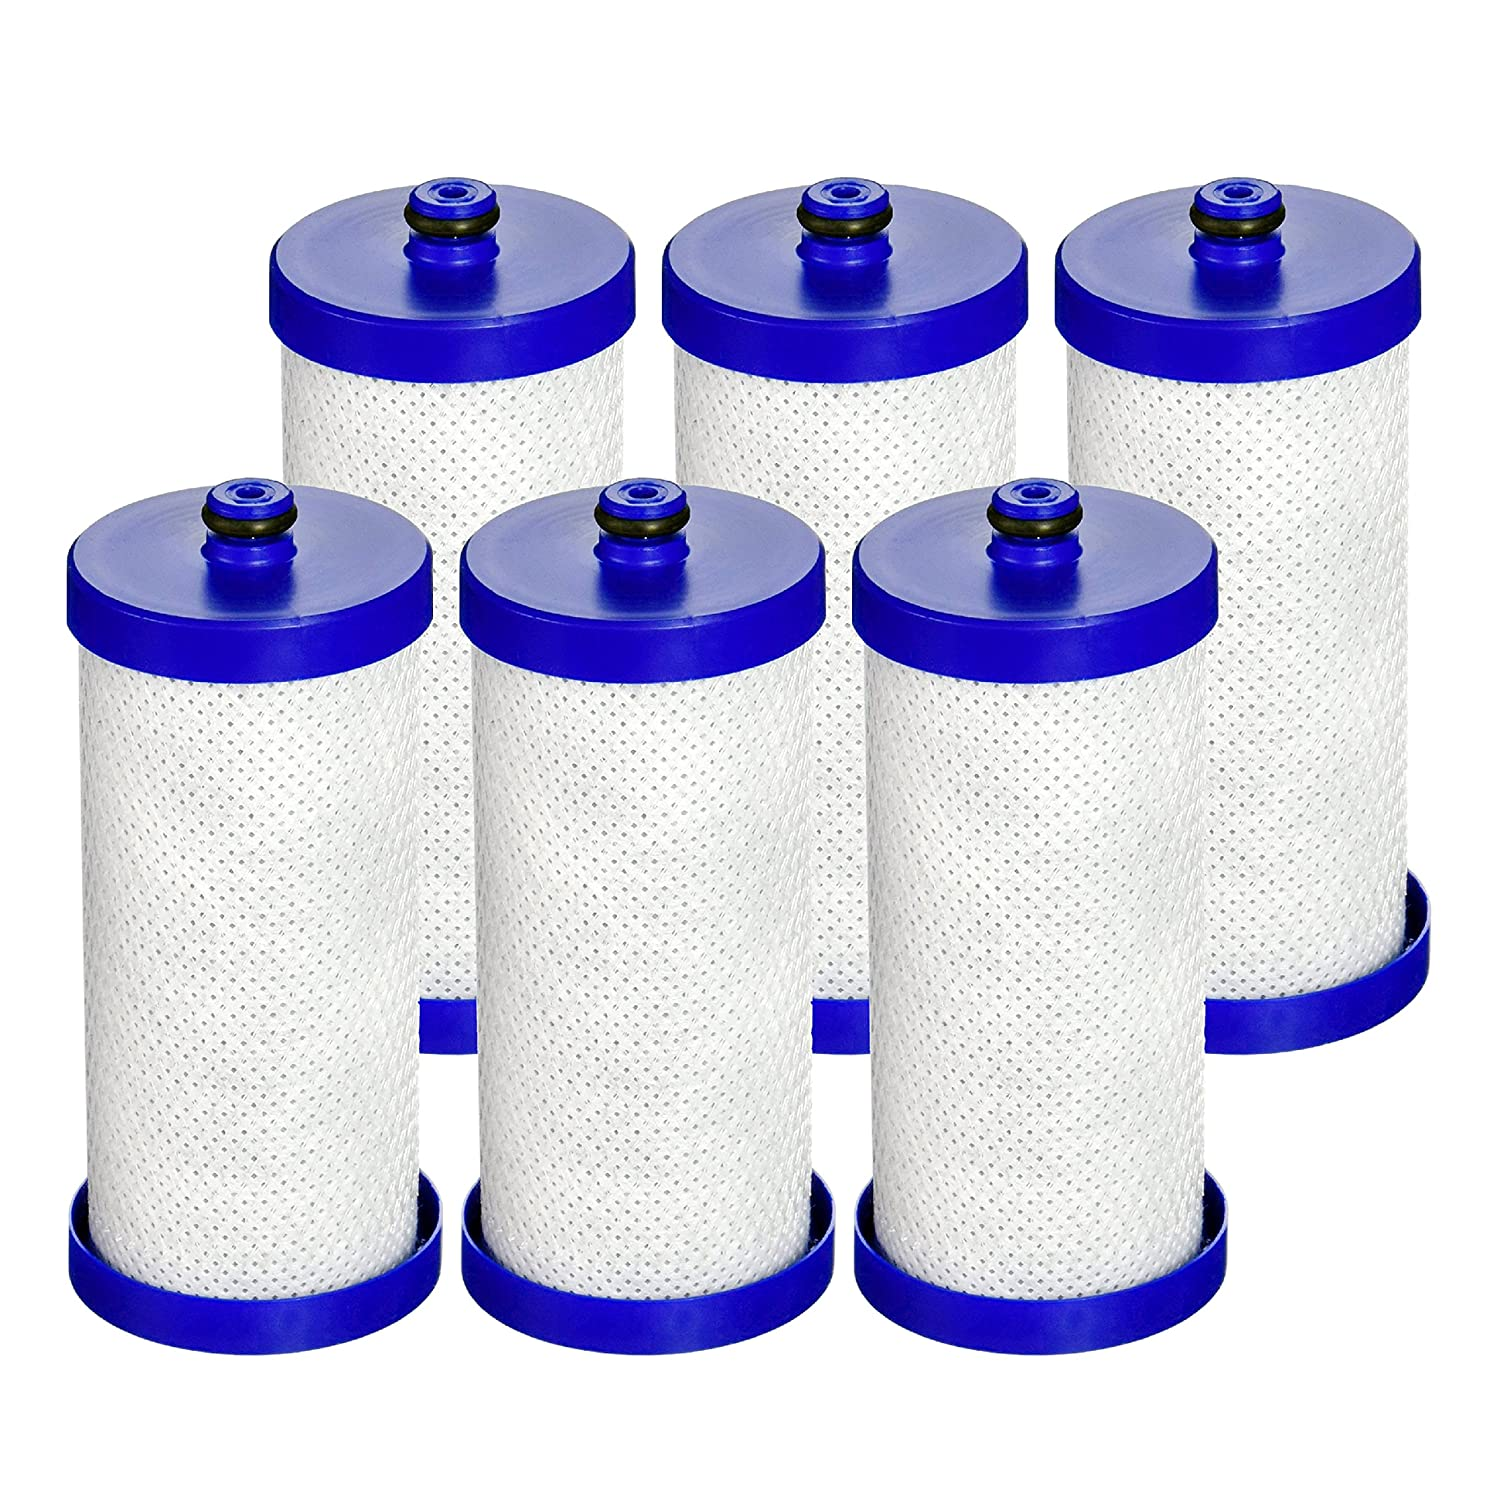 Waterdrop Refrigerator Water Filter, Compatible with WF1CB, WFCB, RG100, NGRG2000, WF284, 9910, 469906, 469910, Pack of 6